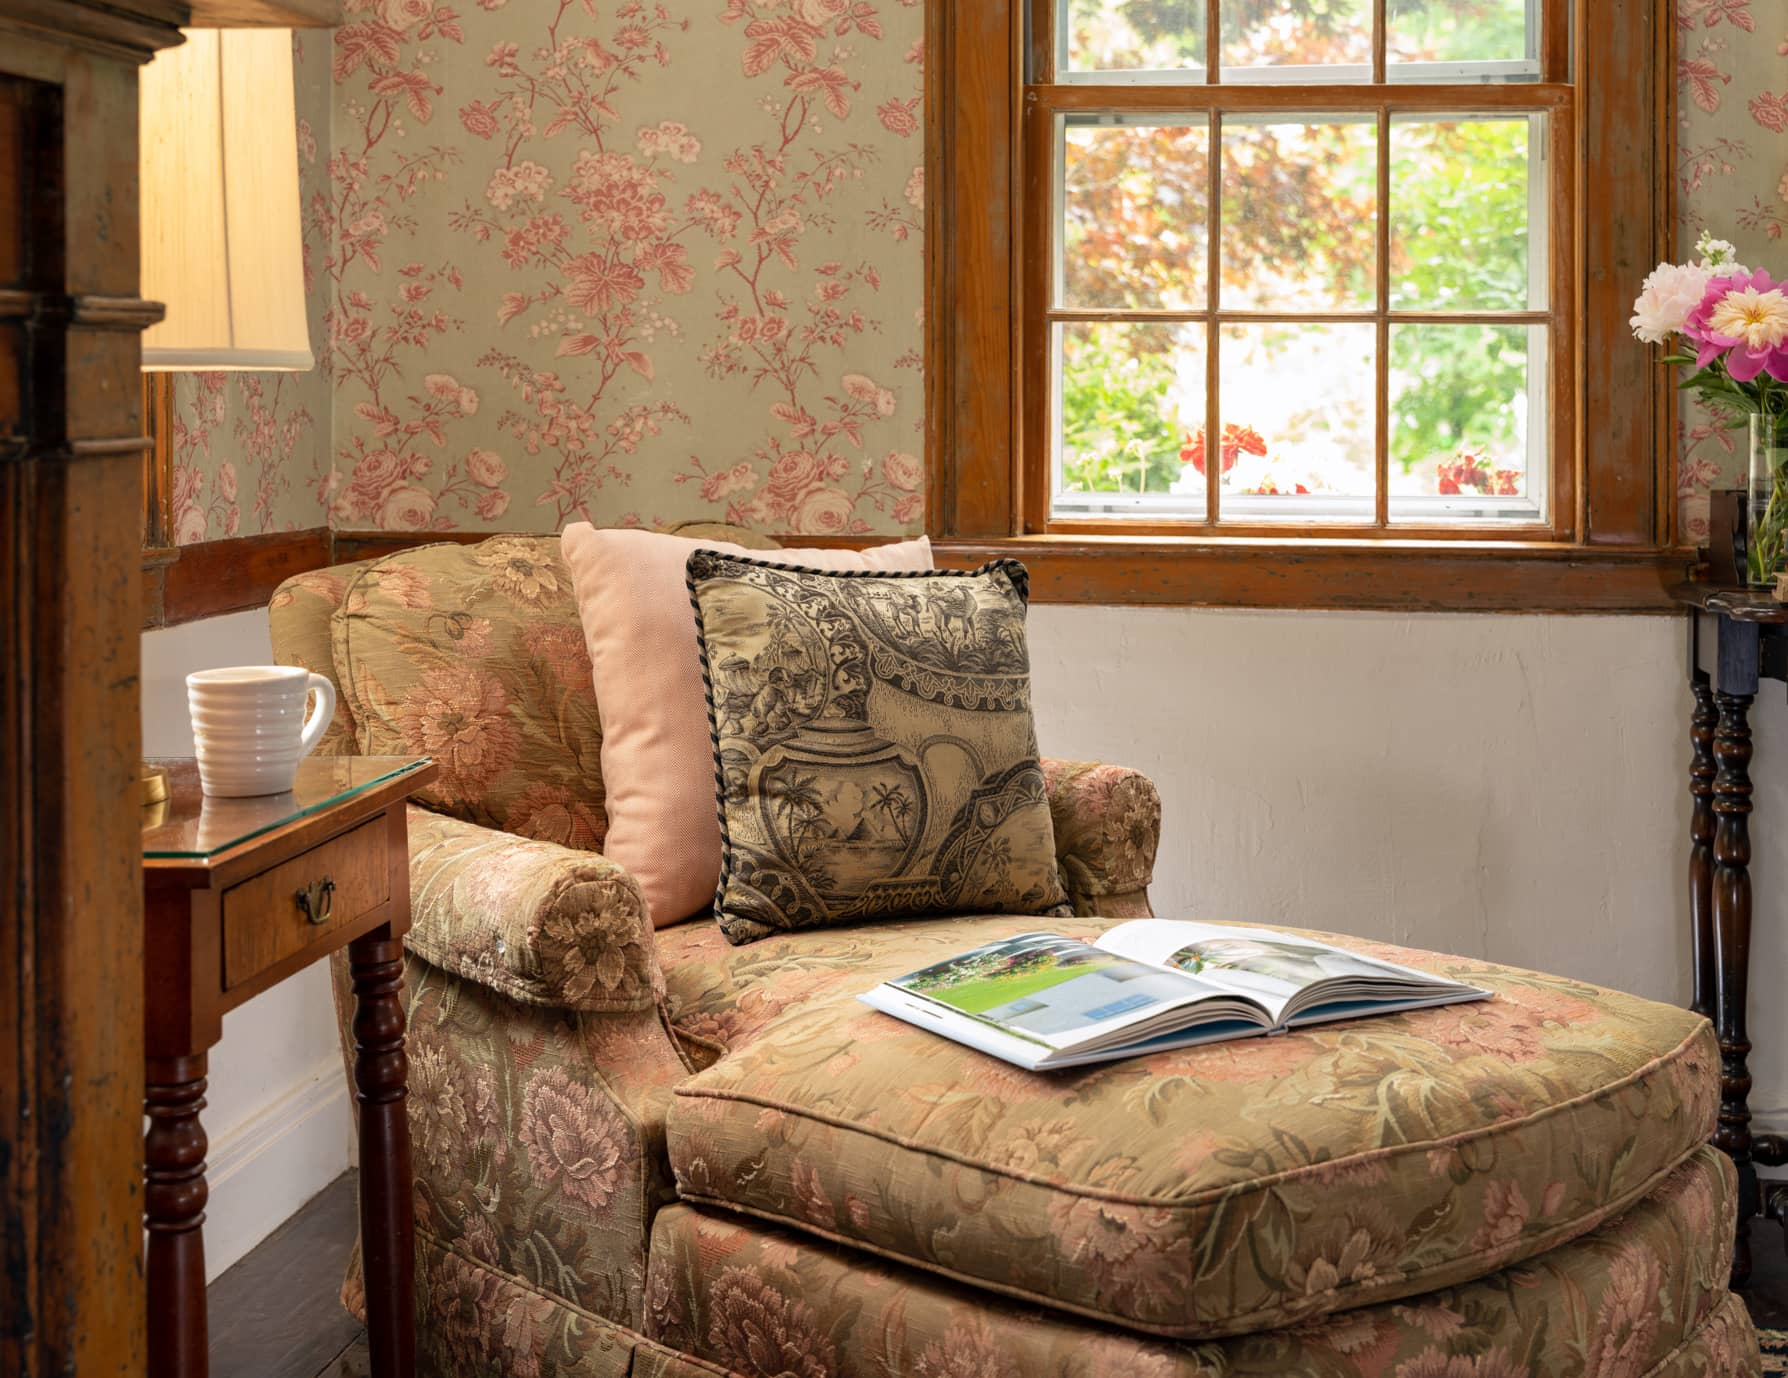 Room 11 reading nook with a chaise lounger